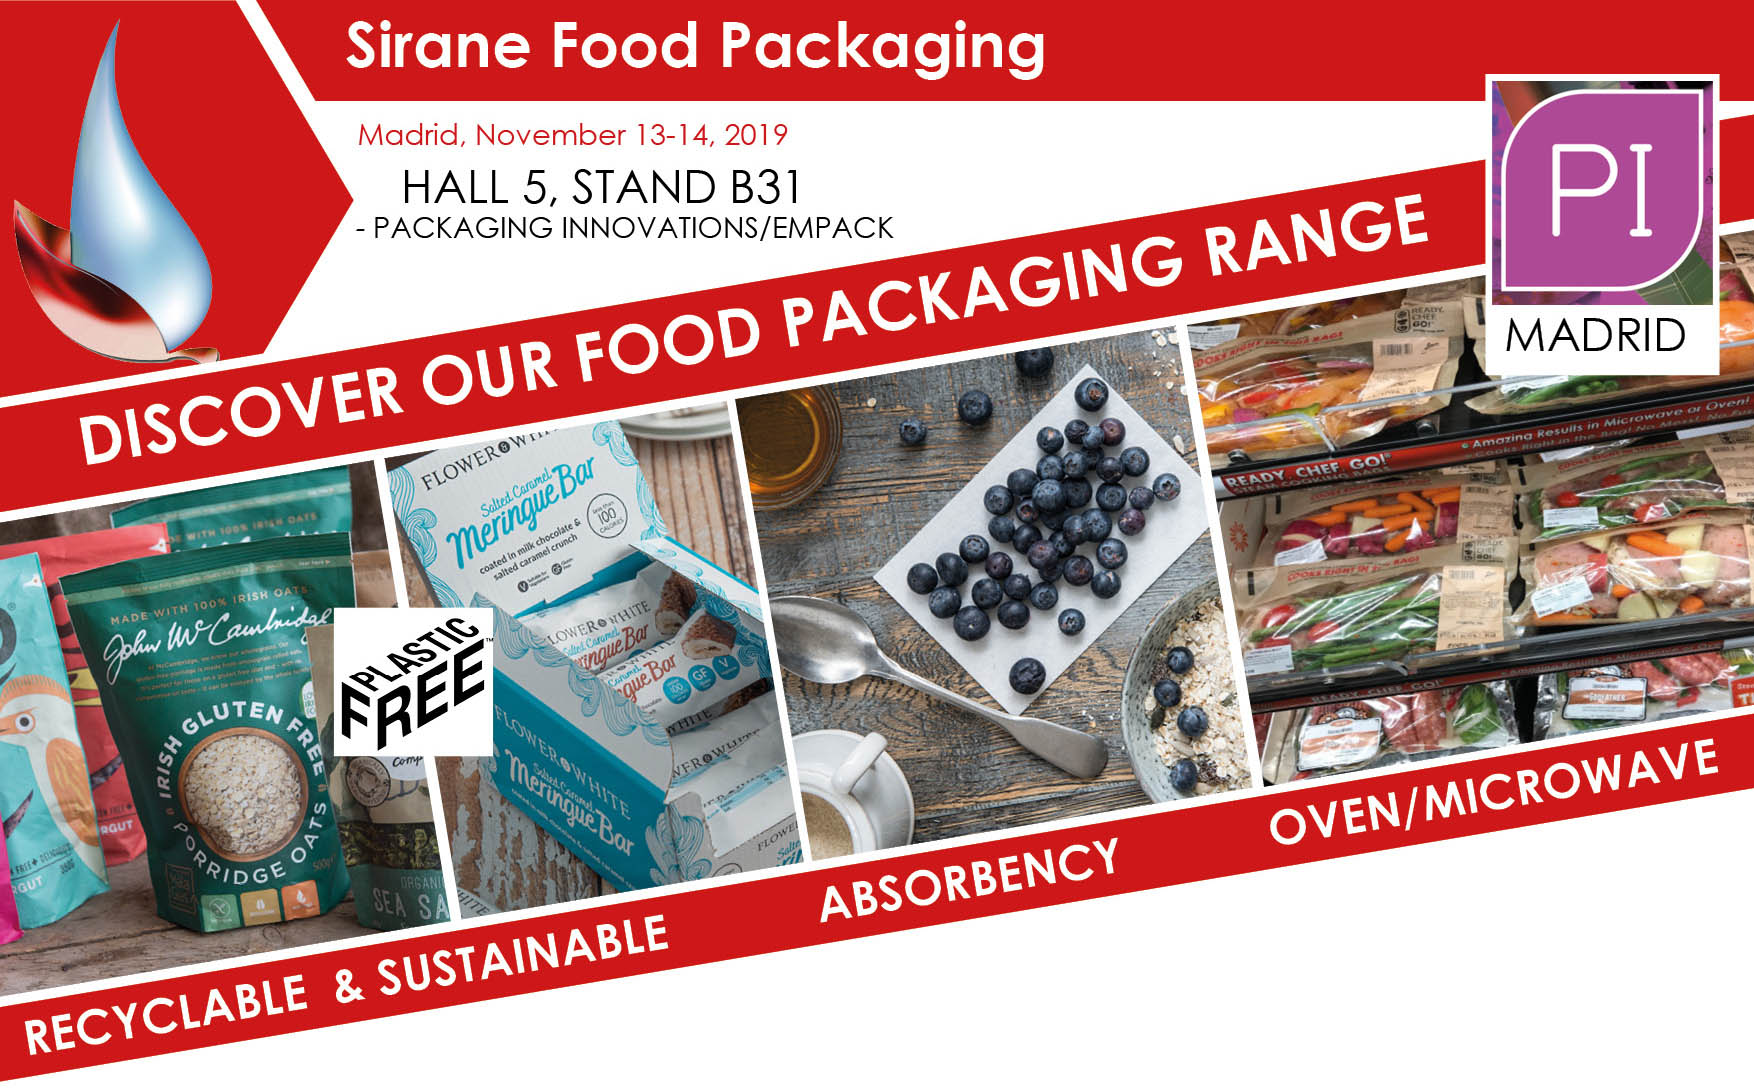 Sirane will be exhibiting at Packaging Innovations Madrid